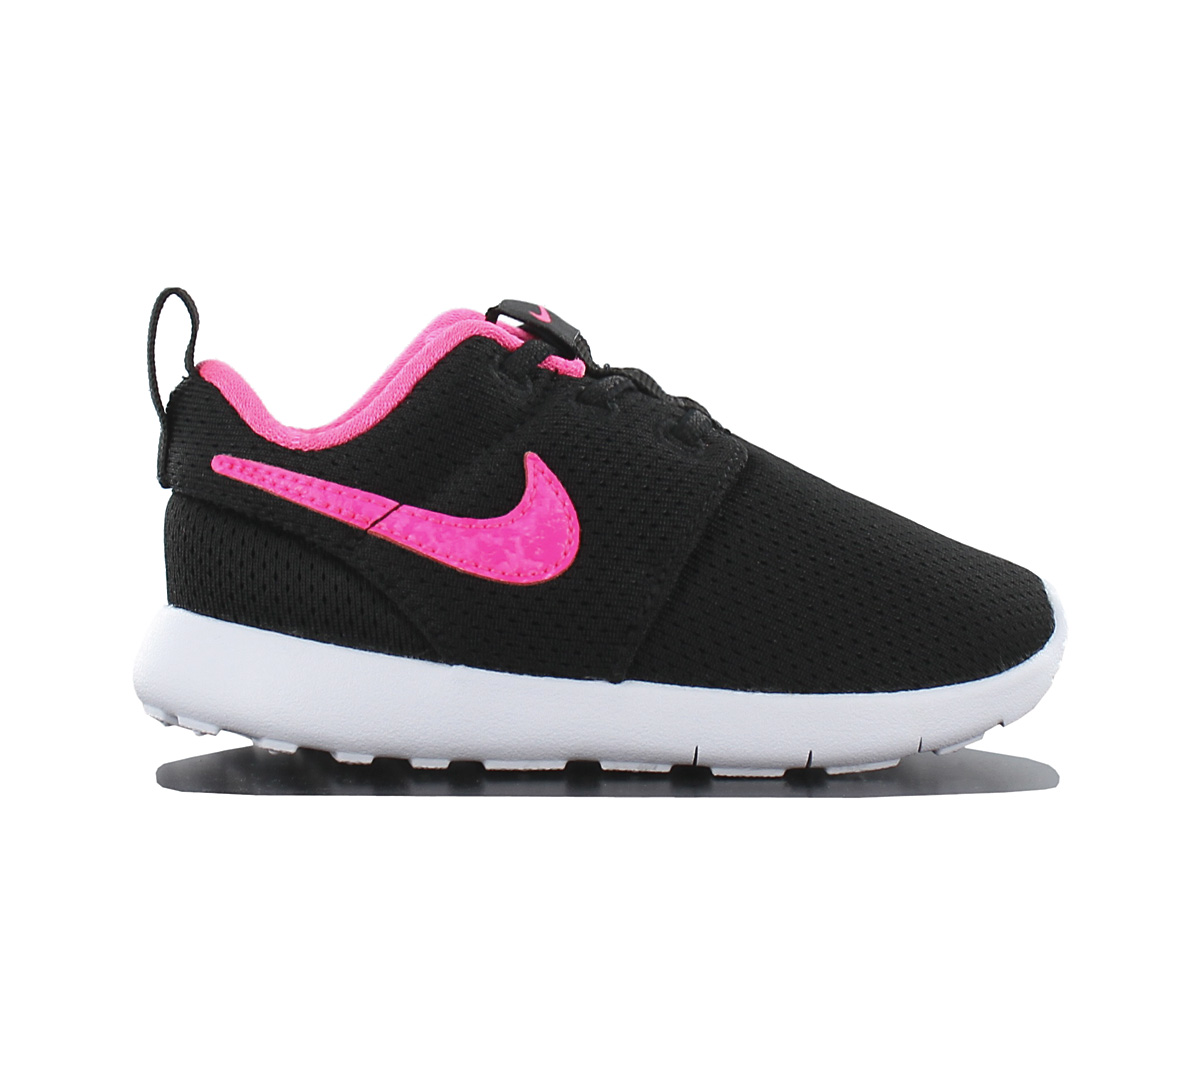 newest e039c a0bb0 Details about Nike Roshe One Tdv Kids Shoes Toddler Baby Girls Black 749425  014 New